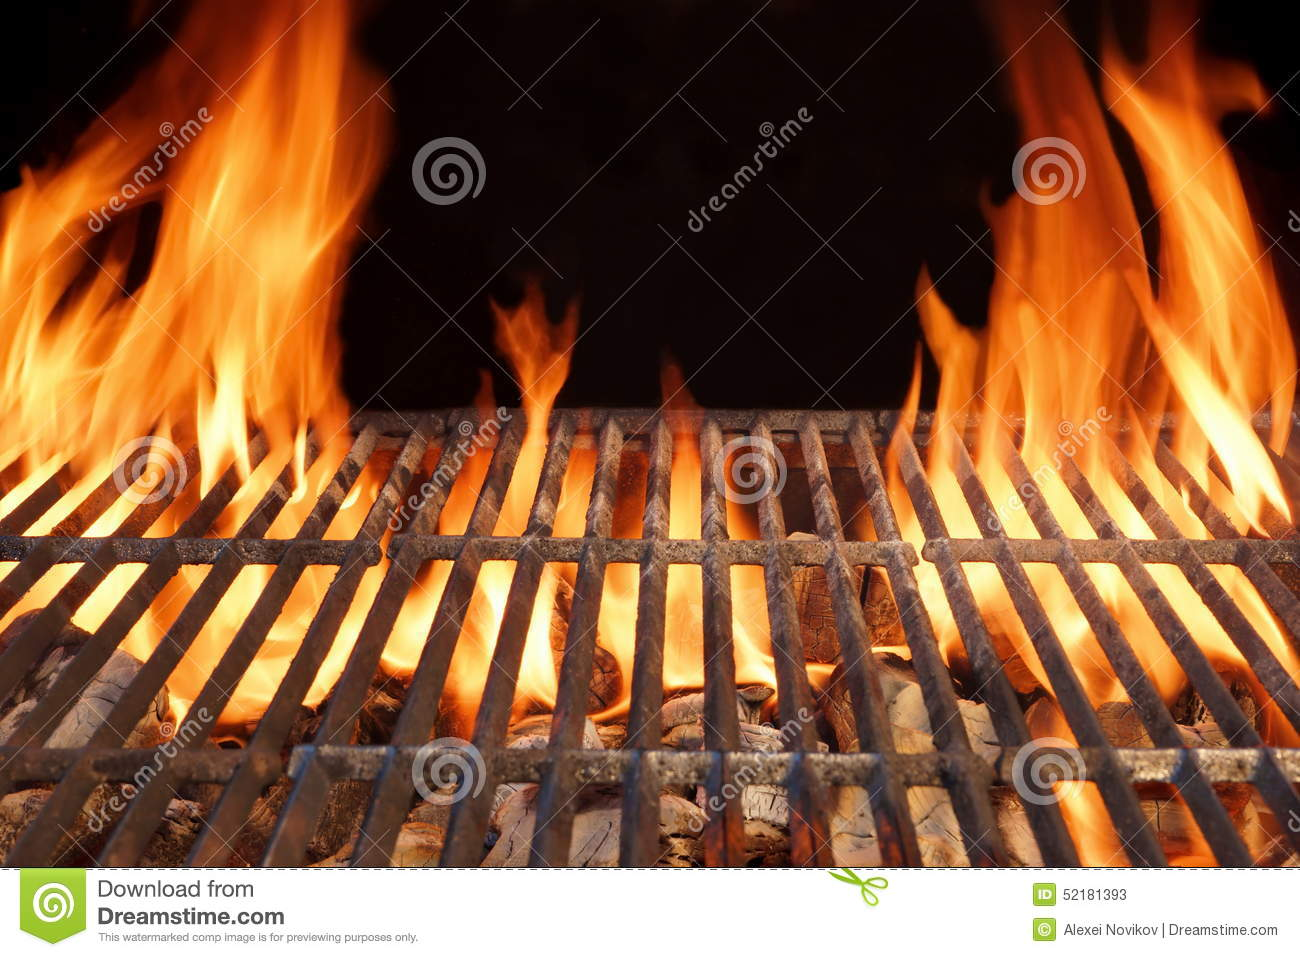 Flame Fire Empty Hot Barbecue Charcoal Grill With Glowing